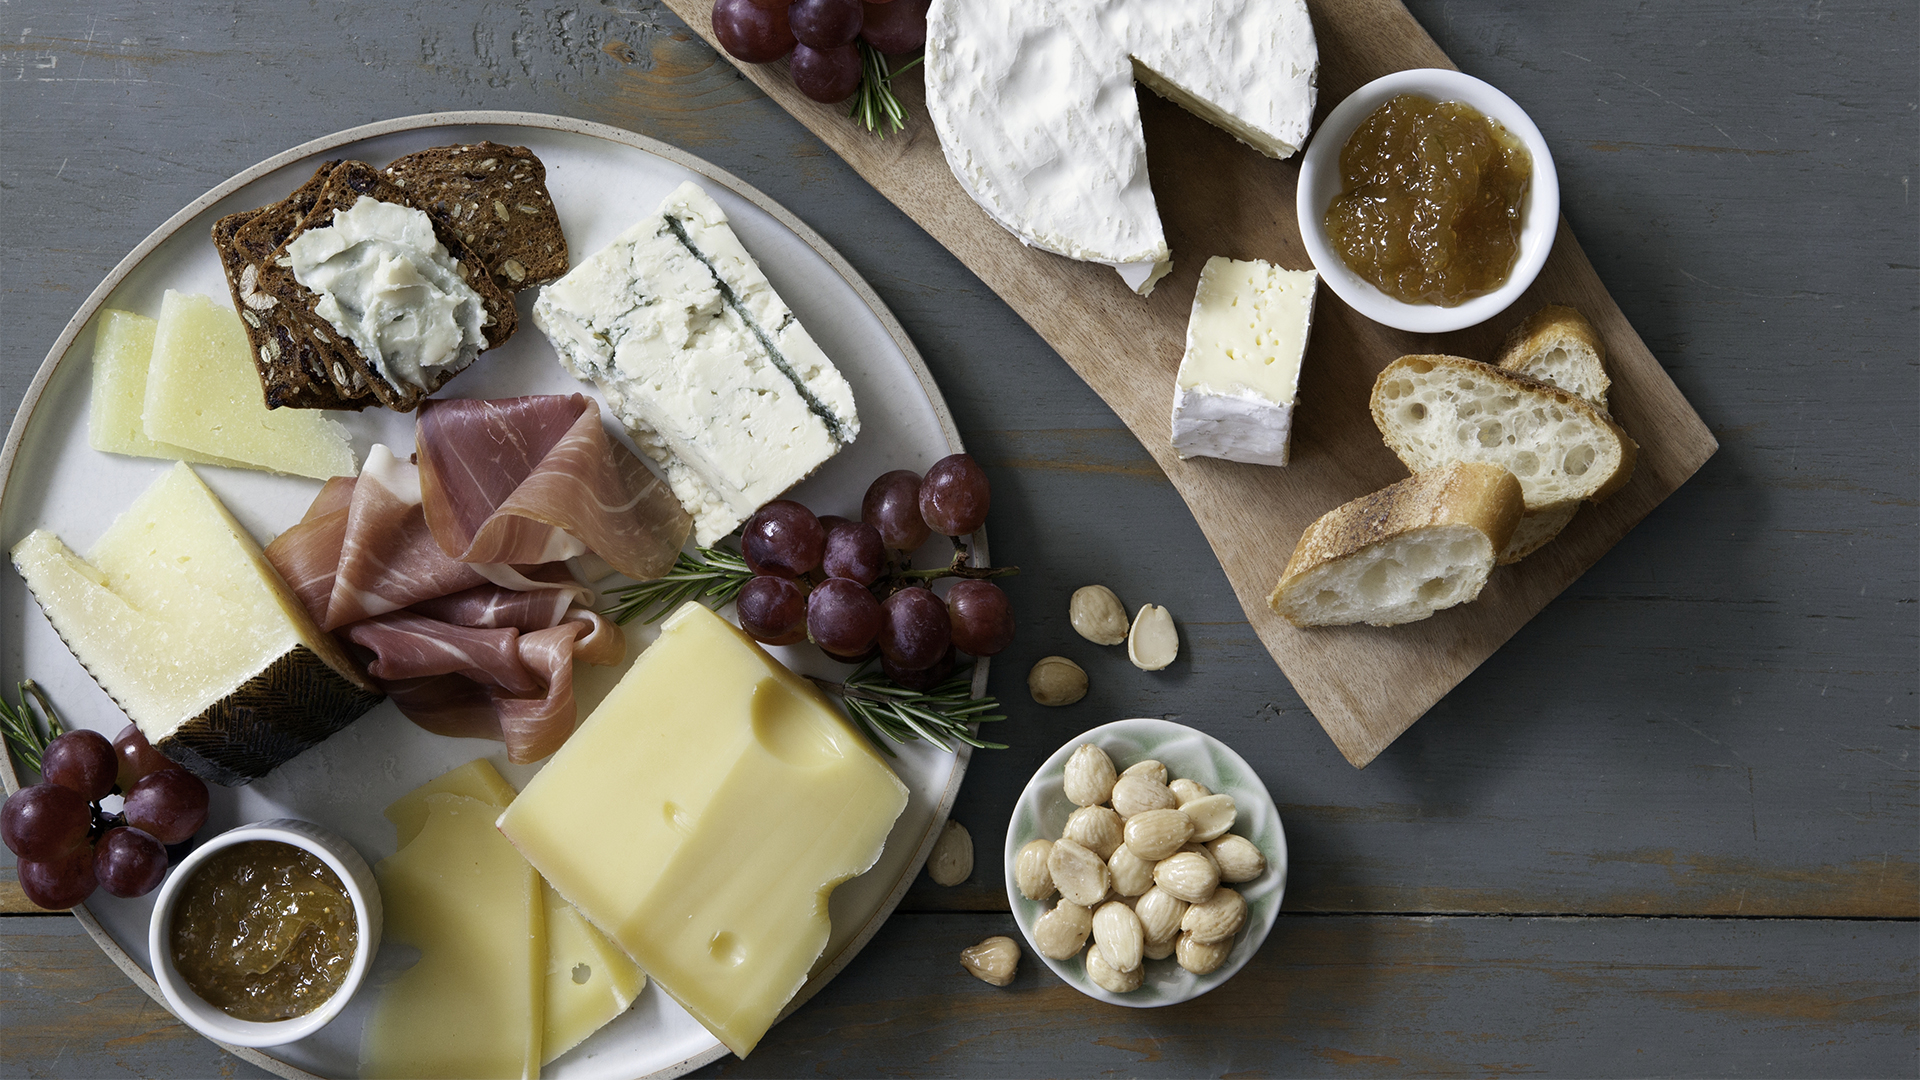 & Best budget cheeses for a holiday cheese board - TODAY.com